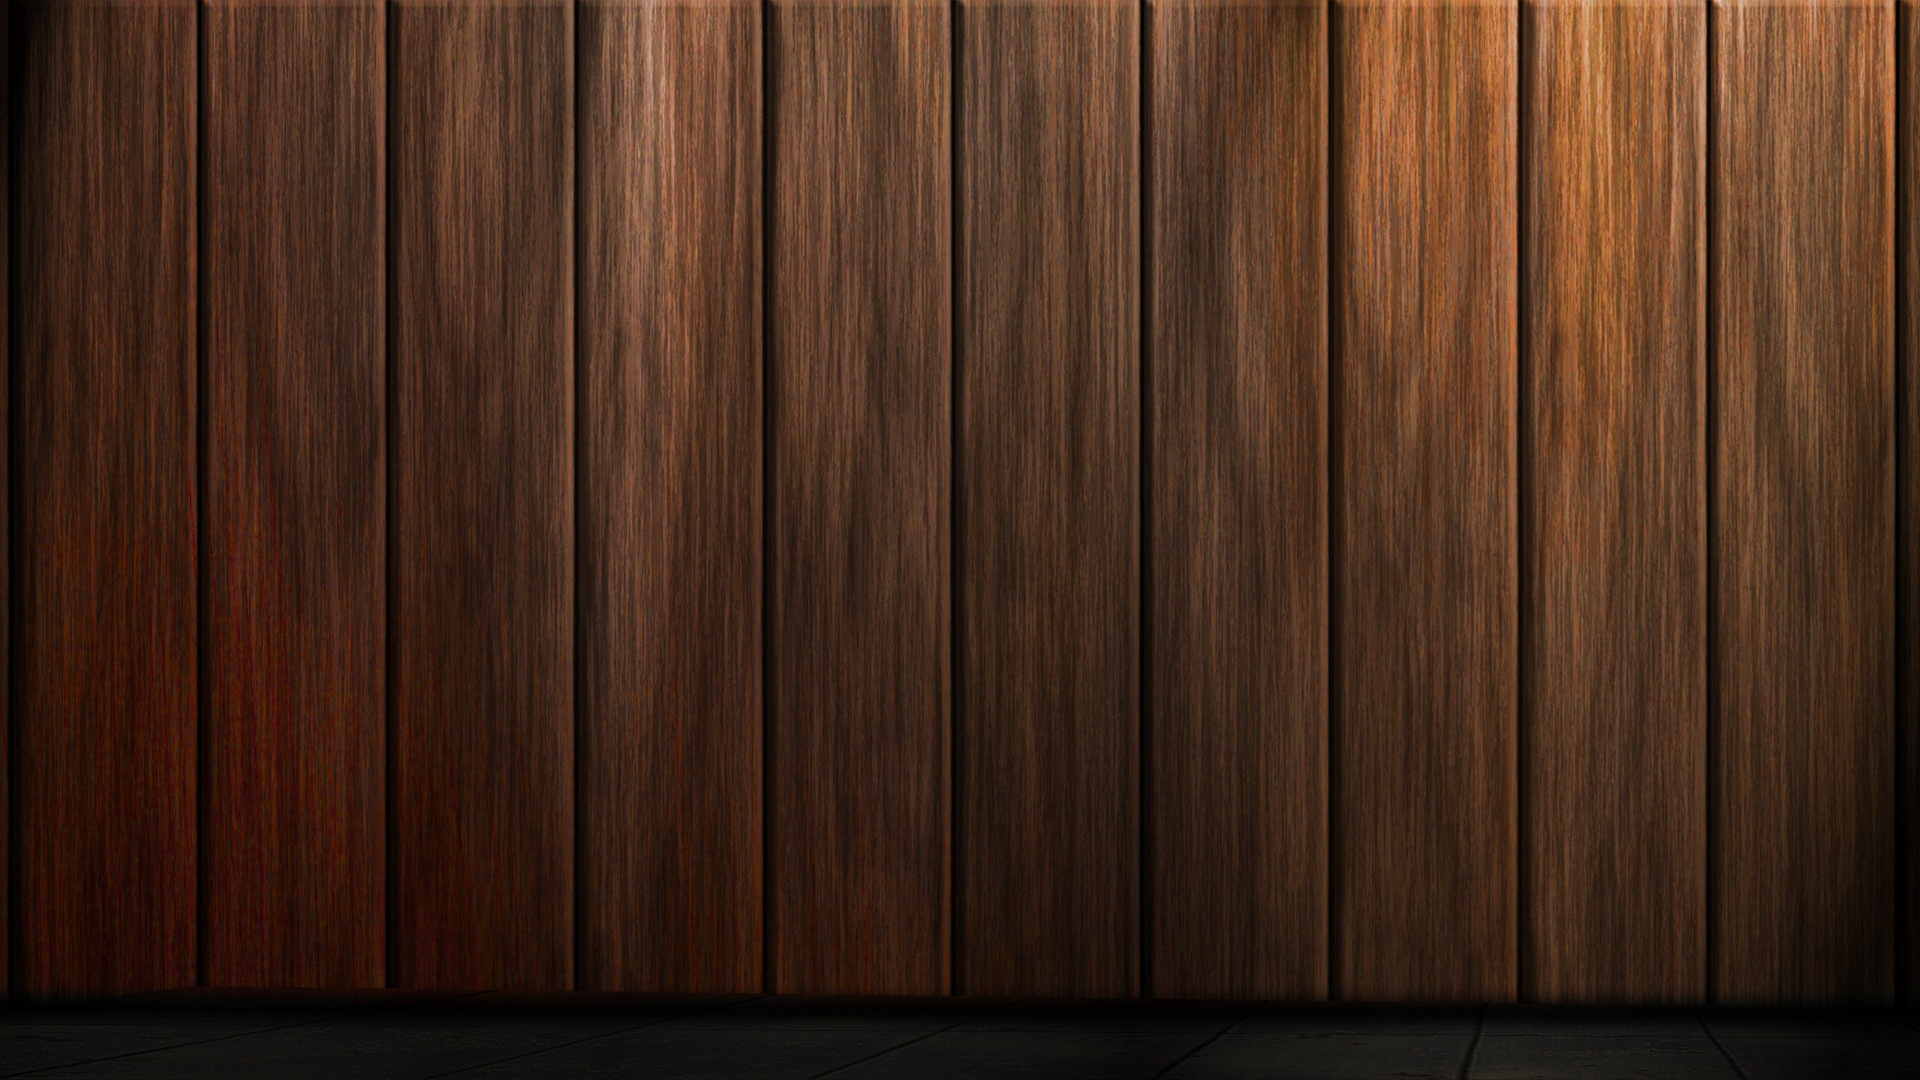 Latest Wallpaper Hd 3d Wooden Wall Free Stock Photo Public Domain Pictures